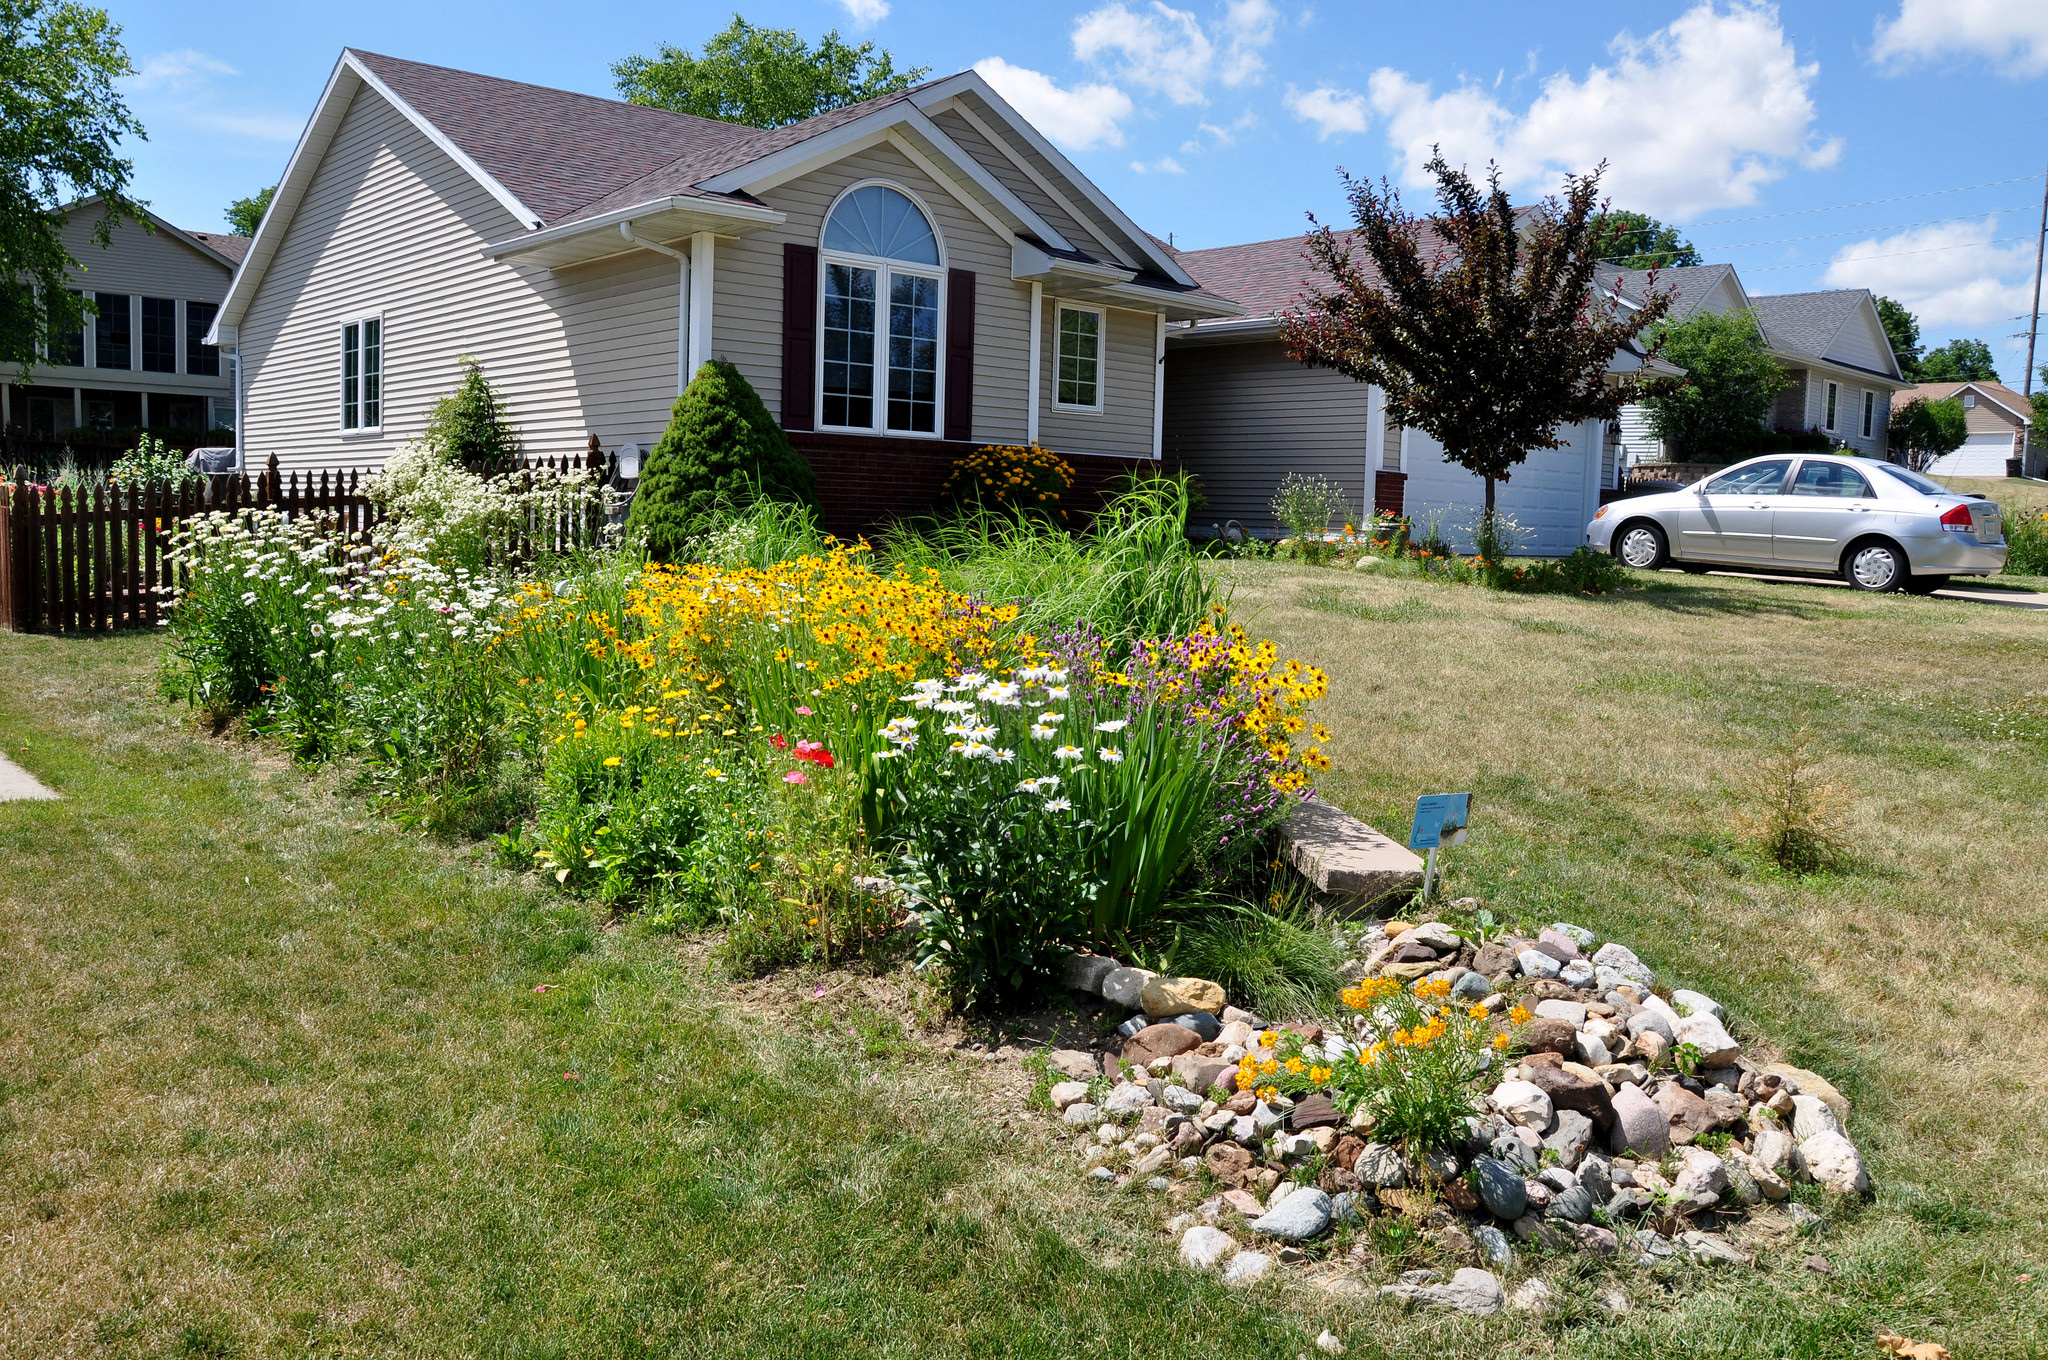 Rain gardens are one way Iowans help soak up and filter rain water - all while beautifying their lawns | Iowa DNR